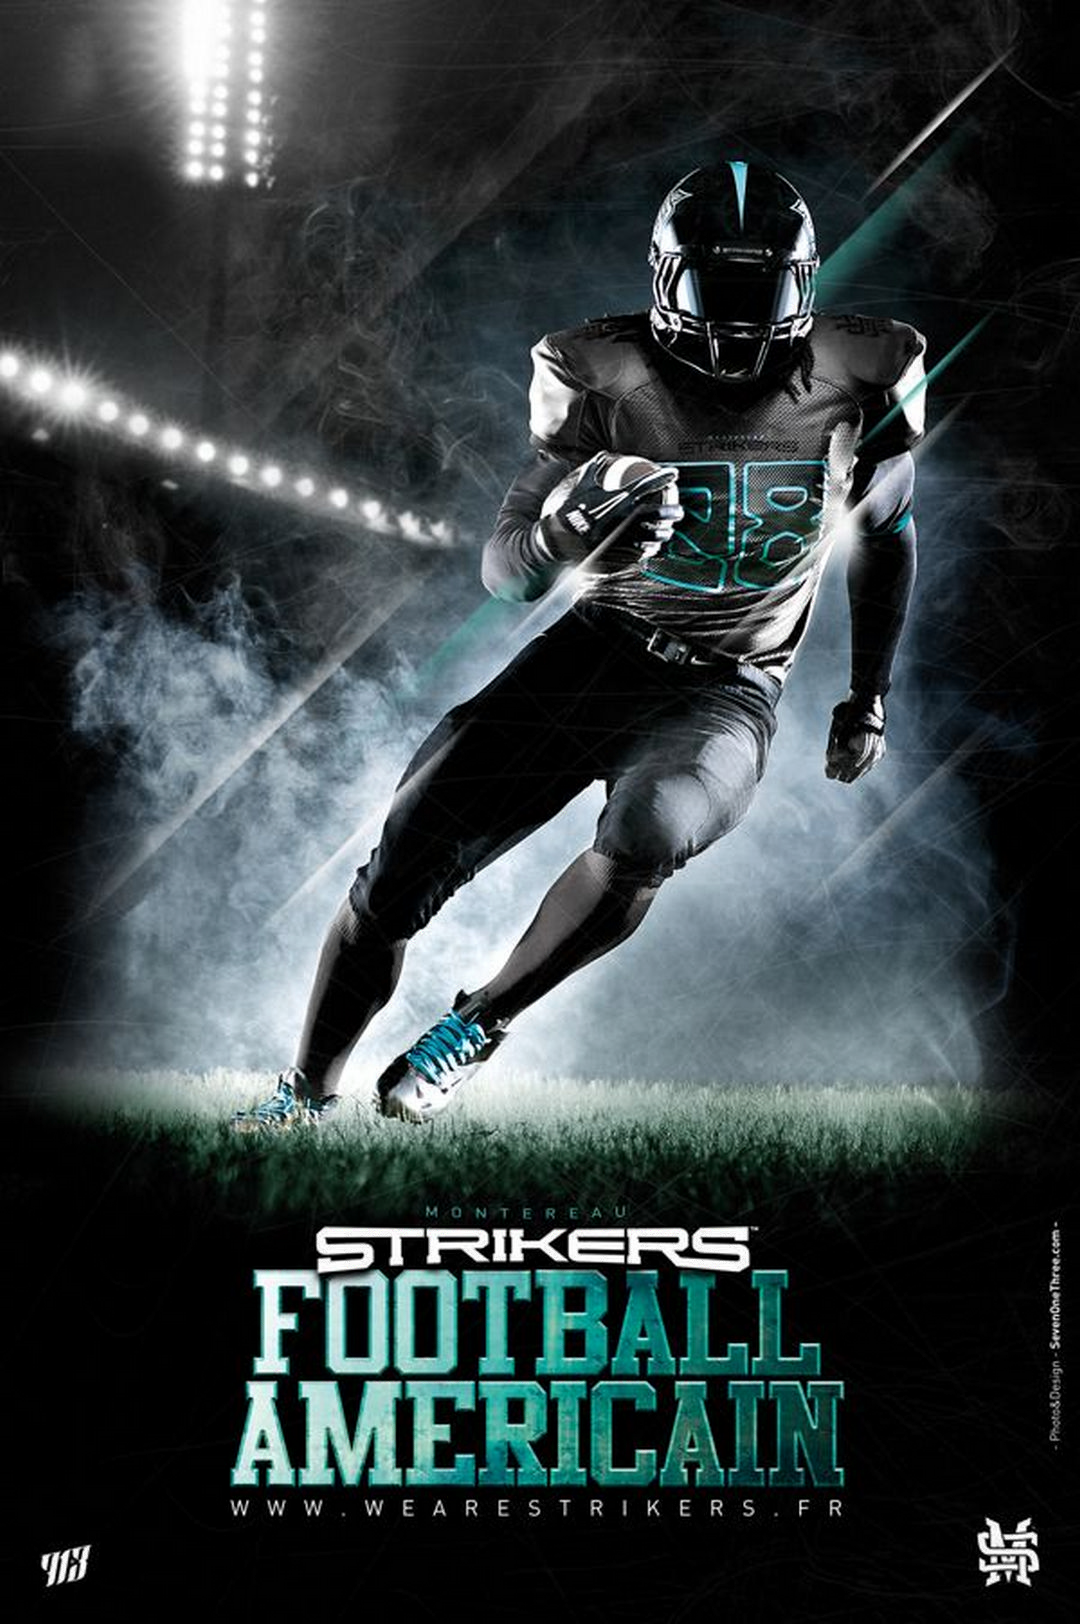 51 Cool Football Graphic (Poster) Designs | Sports graphic ...